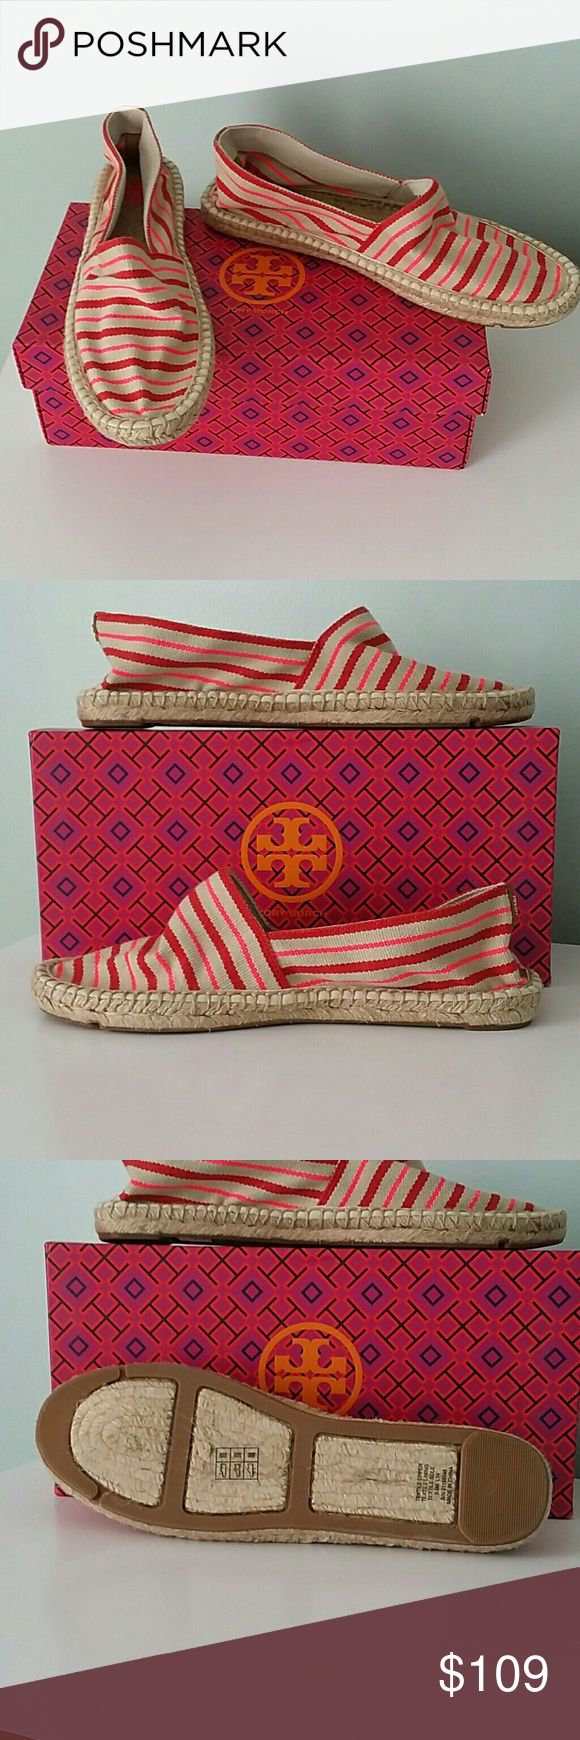 Tory Burch espadrille shoes   nwt 9.5 Jute and canvas slip on espadrille shoes.  Comes with a box. Tory Burch Shoes Espadrilles